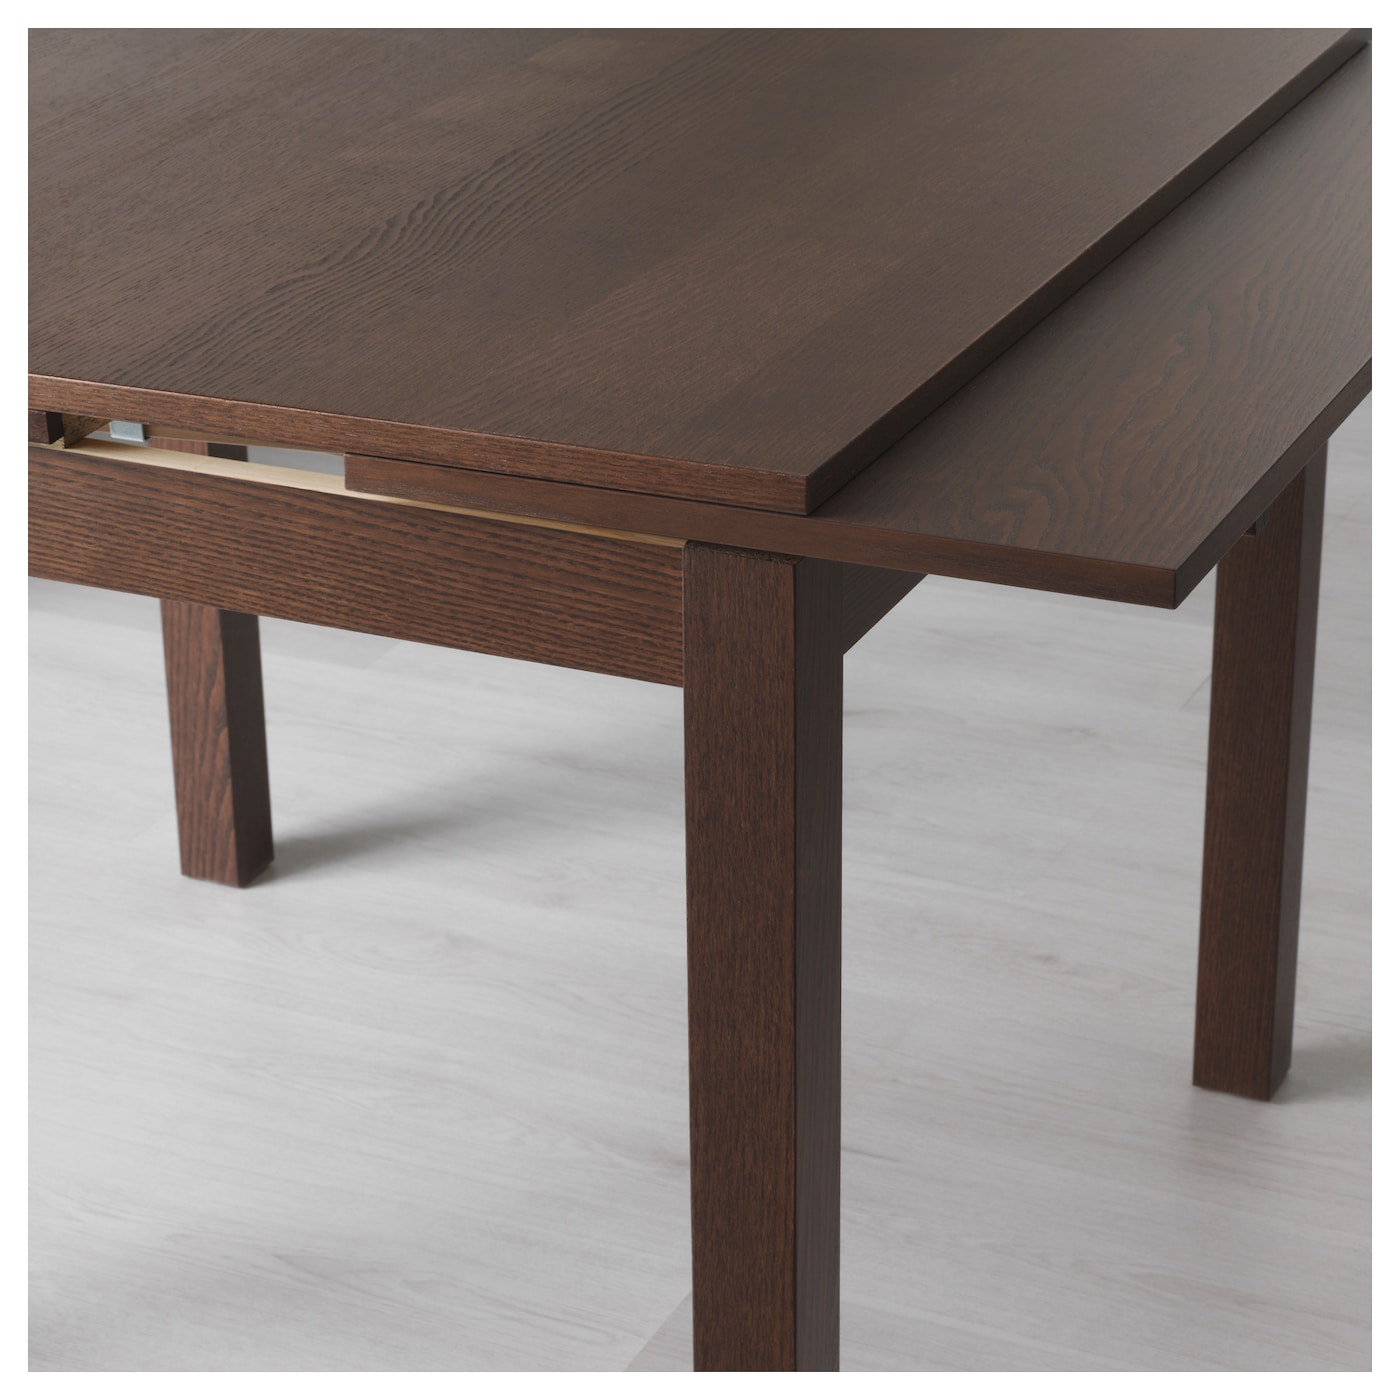 IKEA BJURSTA extendable table 2 pull-out leaves included.